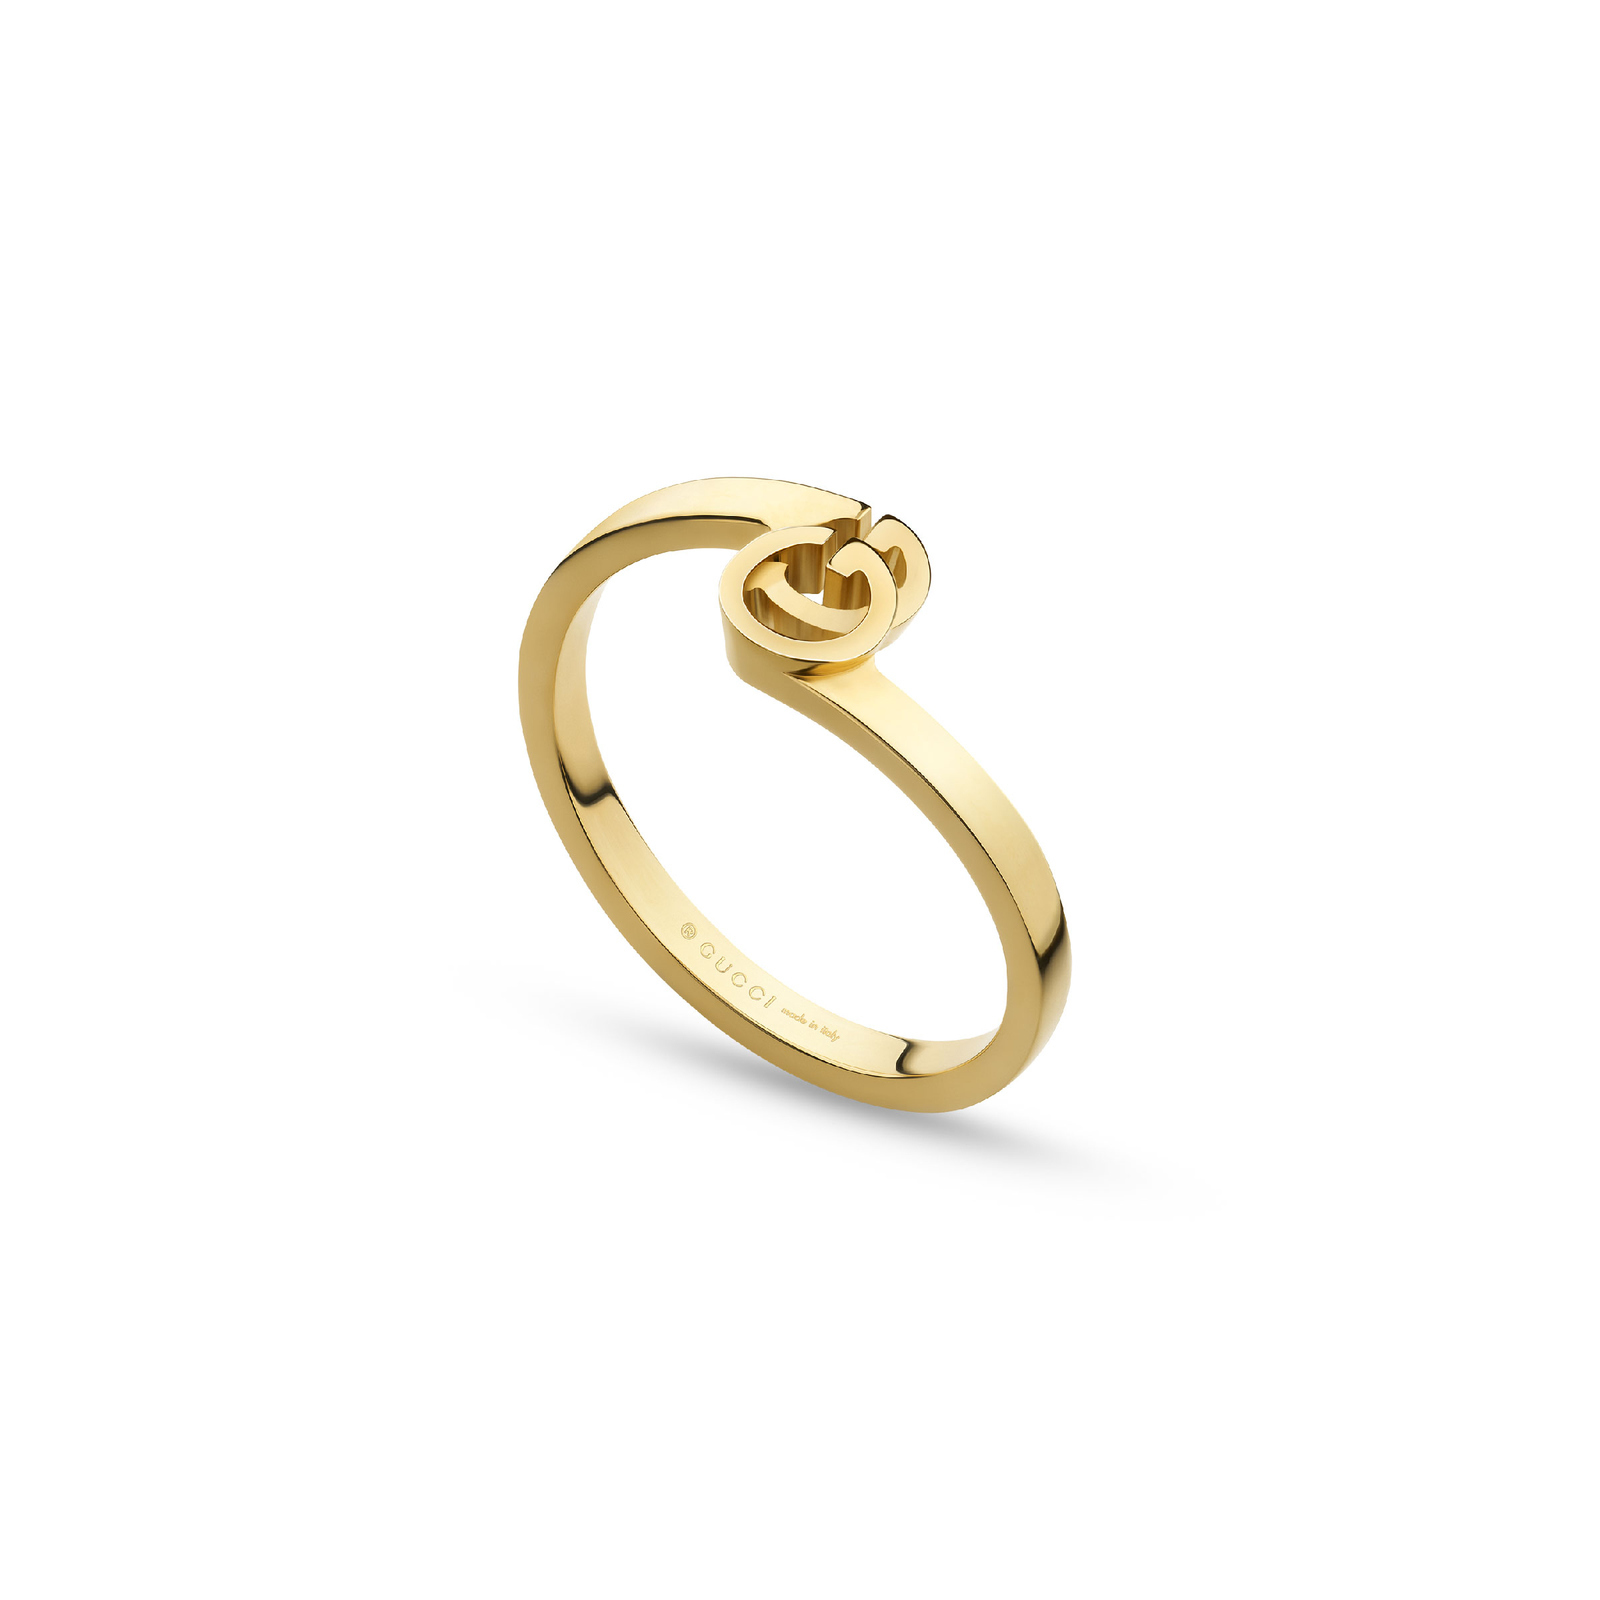 Gucci Running G Ring in 18ct Yellow Gold - Ring Size J